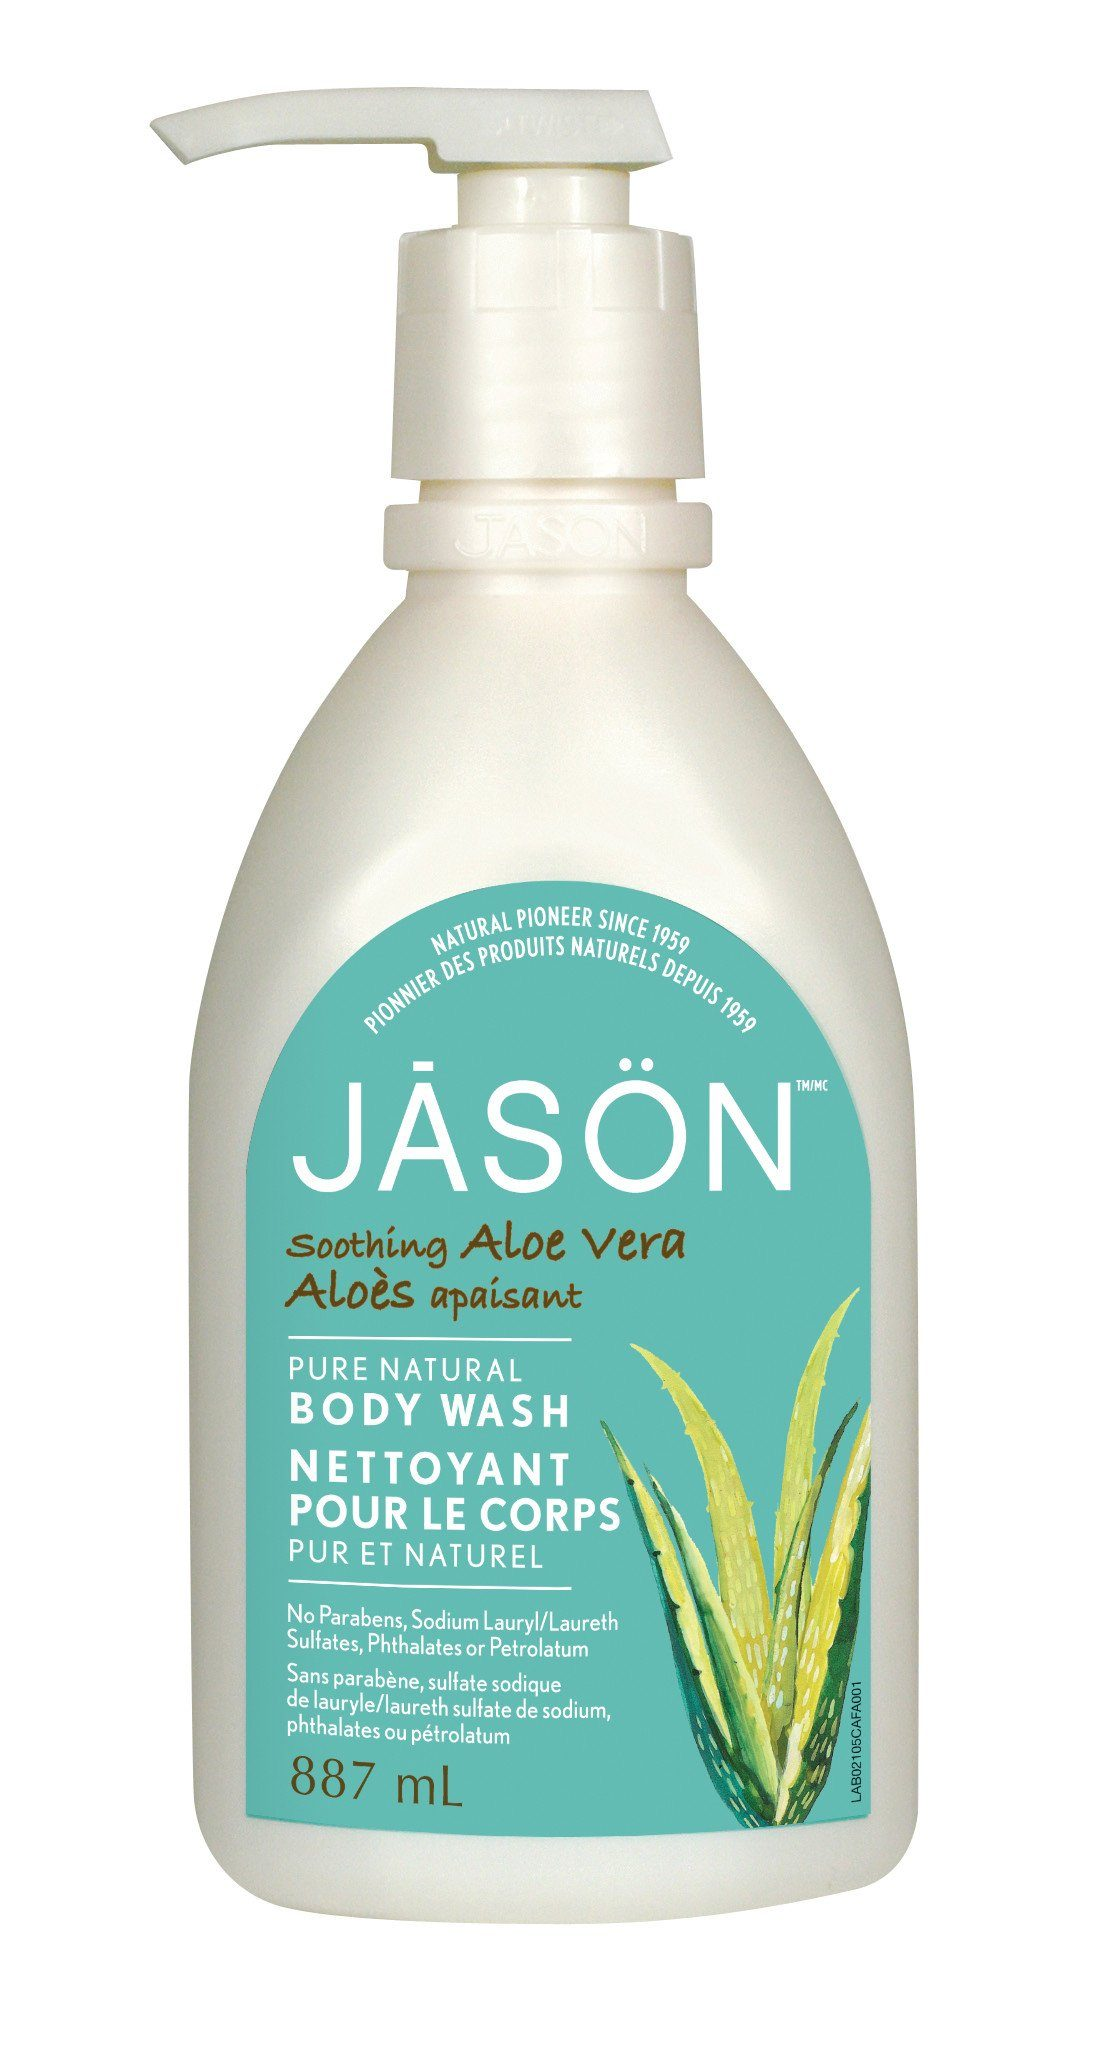 Personal Care - JASON - Soothing Aloe Vera Body Wash, 887ml